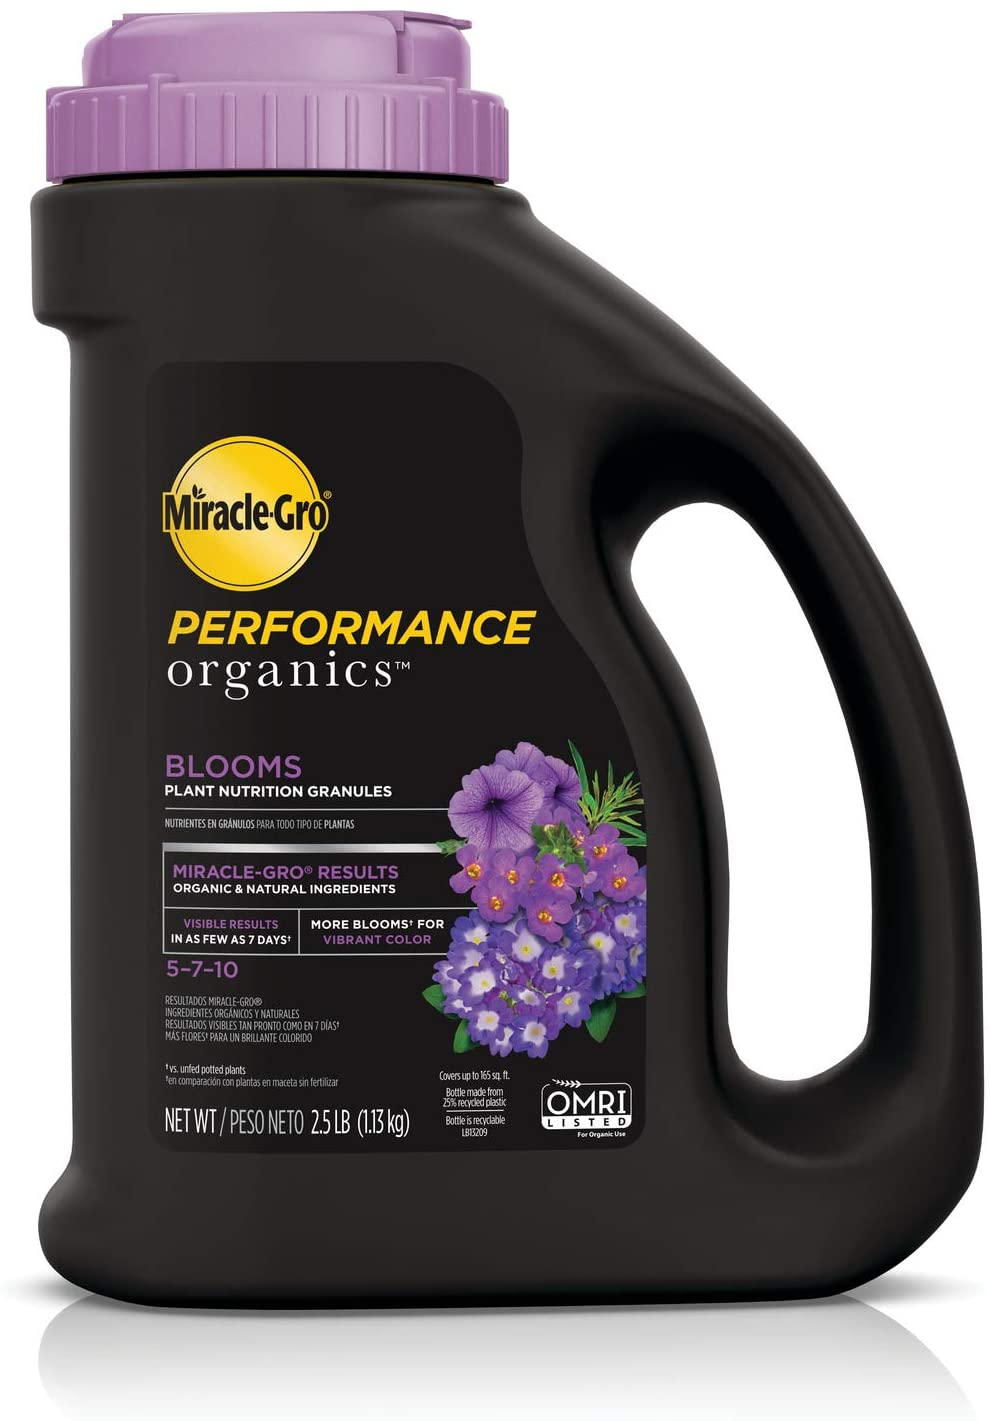 Miracle-Gro Performance Organics Blooms Plant Nutrition Granules - Plant Food with Natural & Organic Ingredients, for Flowering Plants, 2.5 lbs.